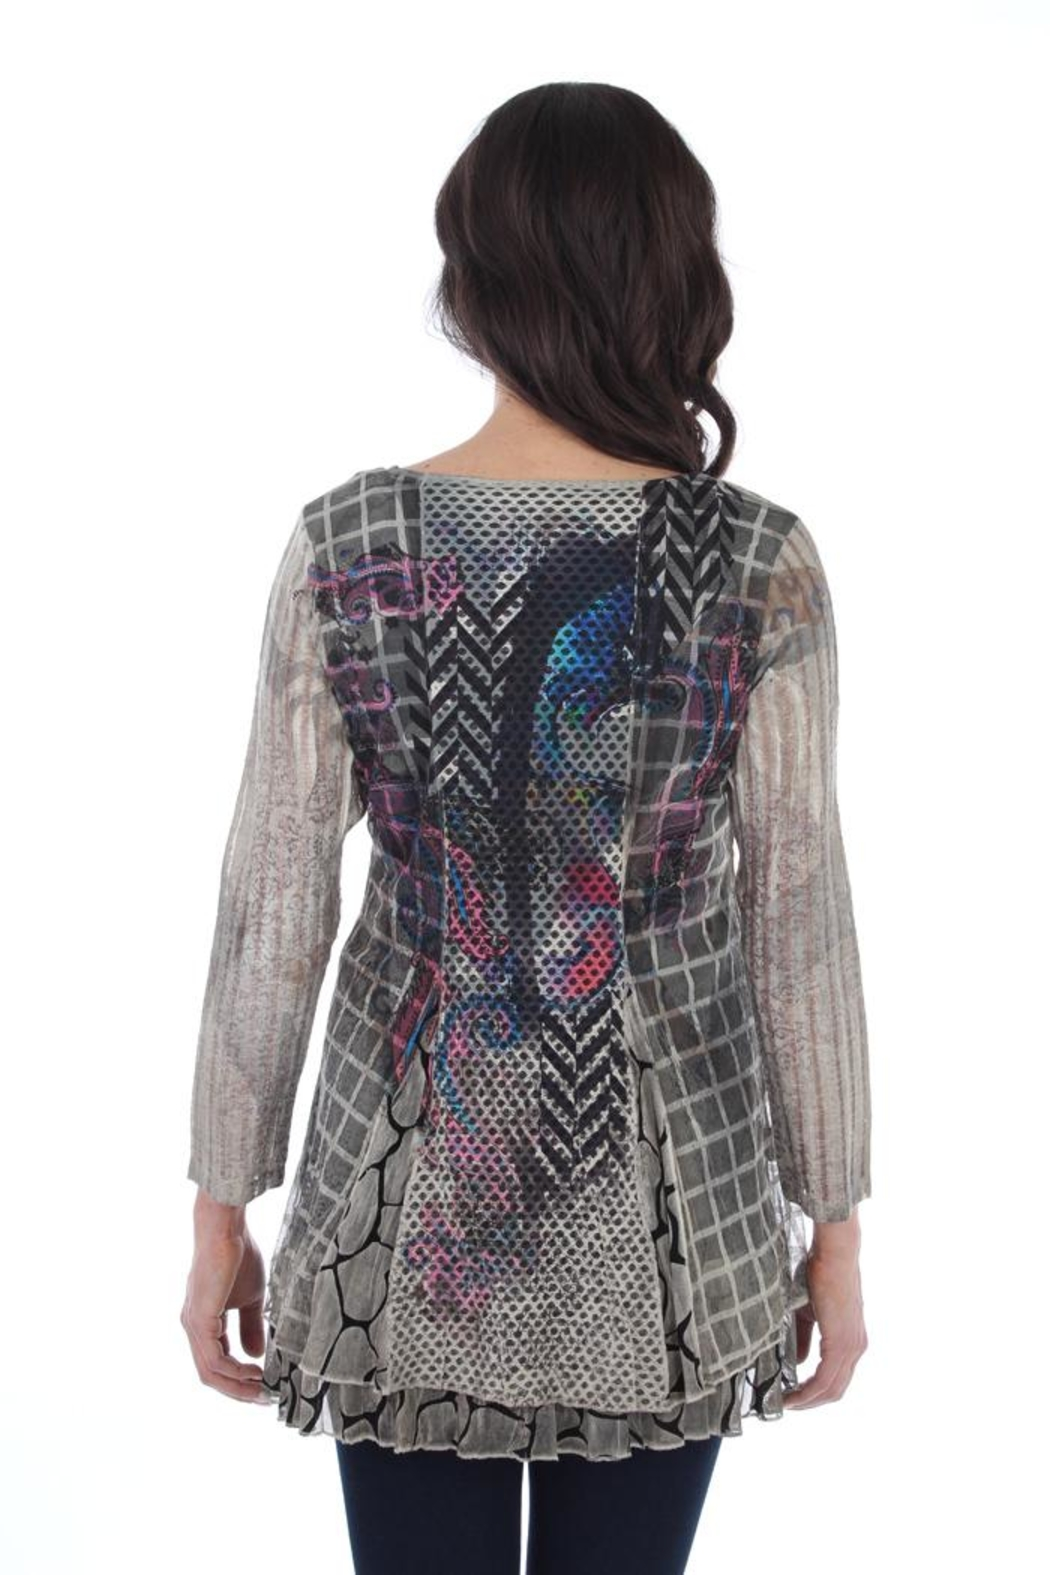 Fine Line Imports Nicole Tunic Top - Side Cropped Image